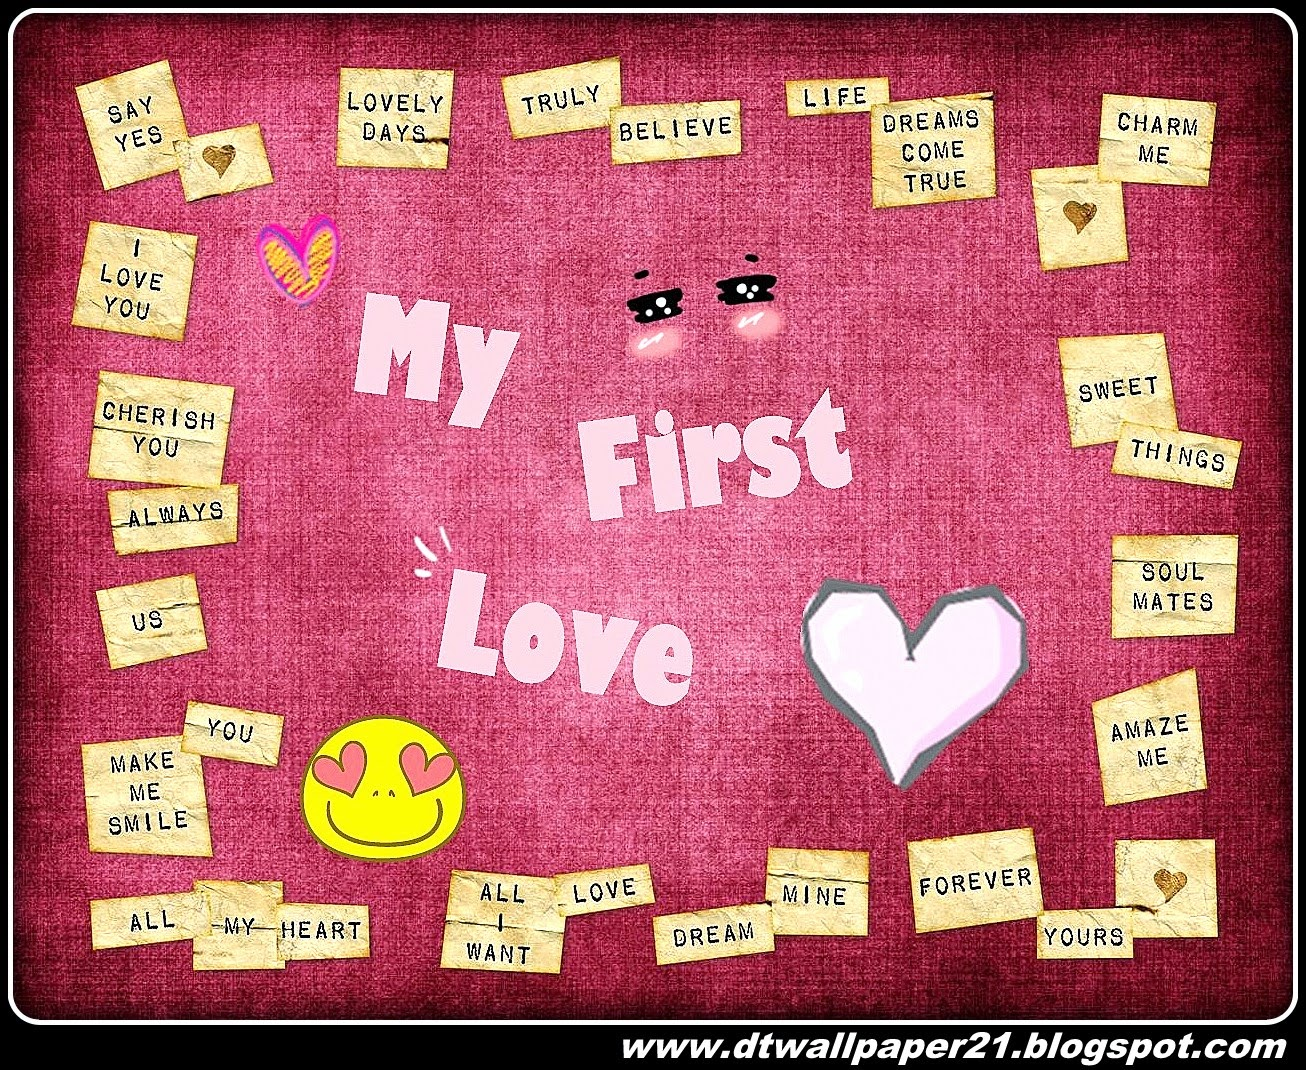 Love Wallpaper Gift : Desktop Wallpaper Background Screensavers: Gift Quotes ...